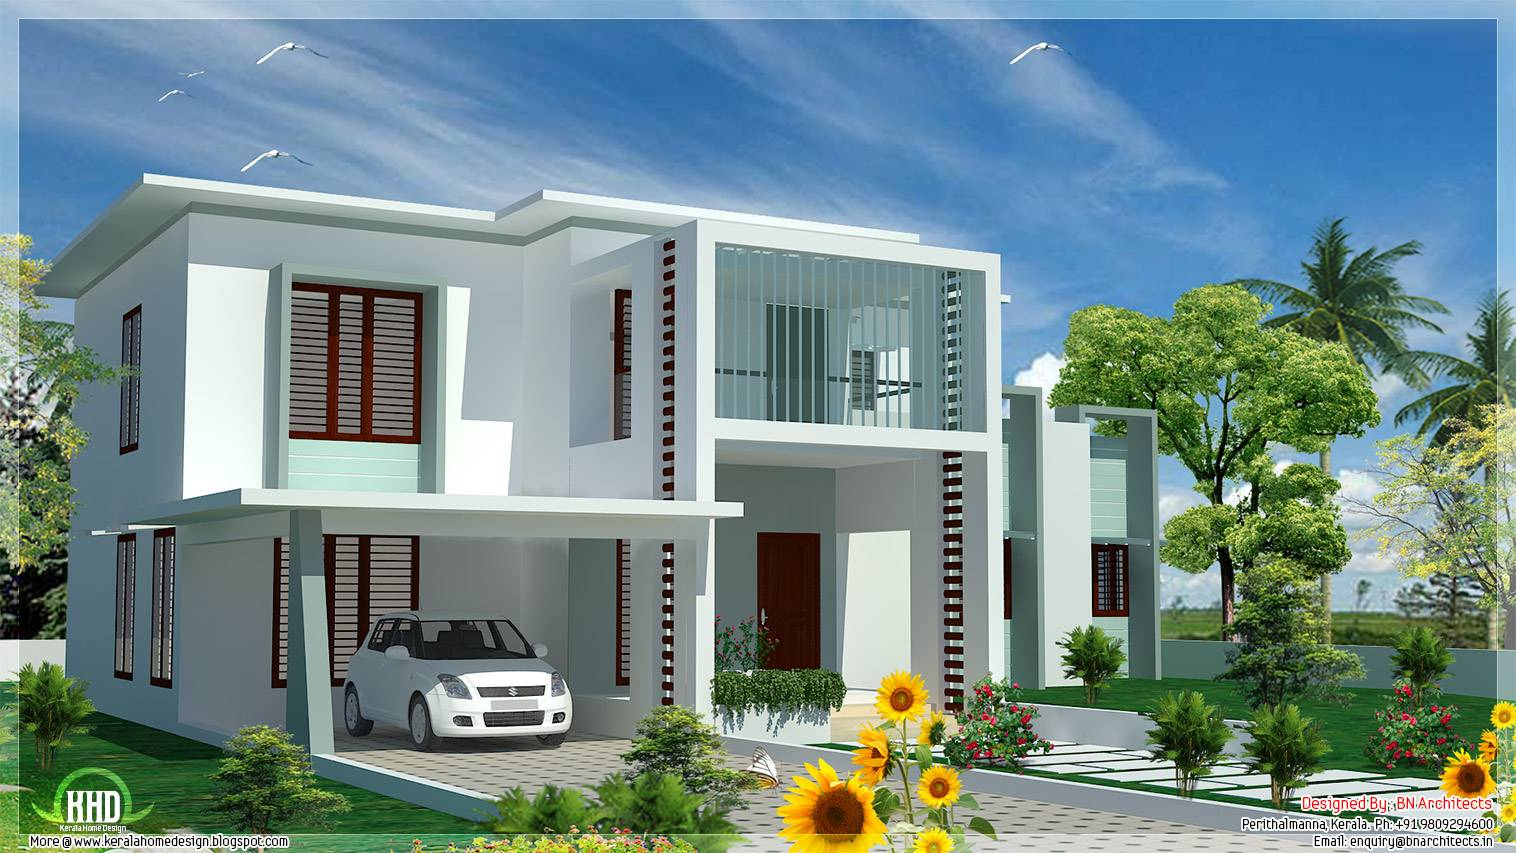 Bedroom Modern Flat Roof House Kerala Home Design Floor Plans Home Plans Blueprints 7685